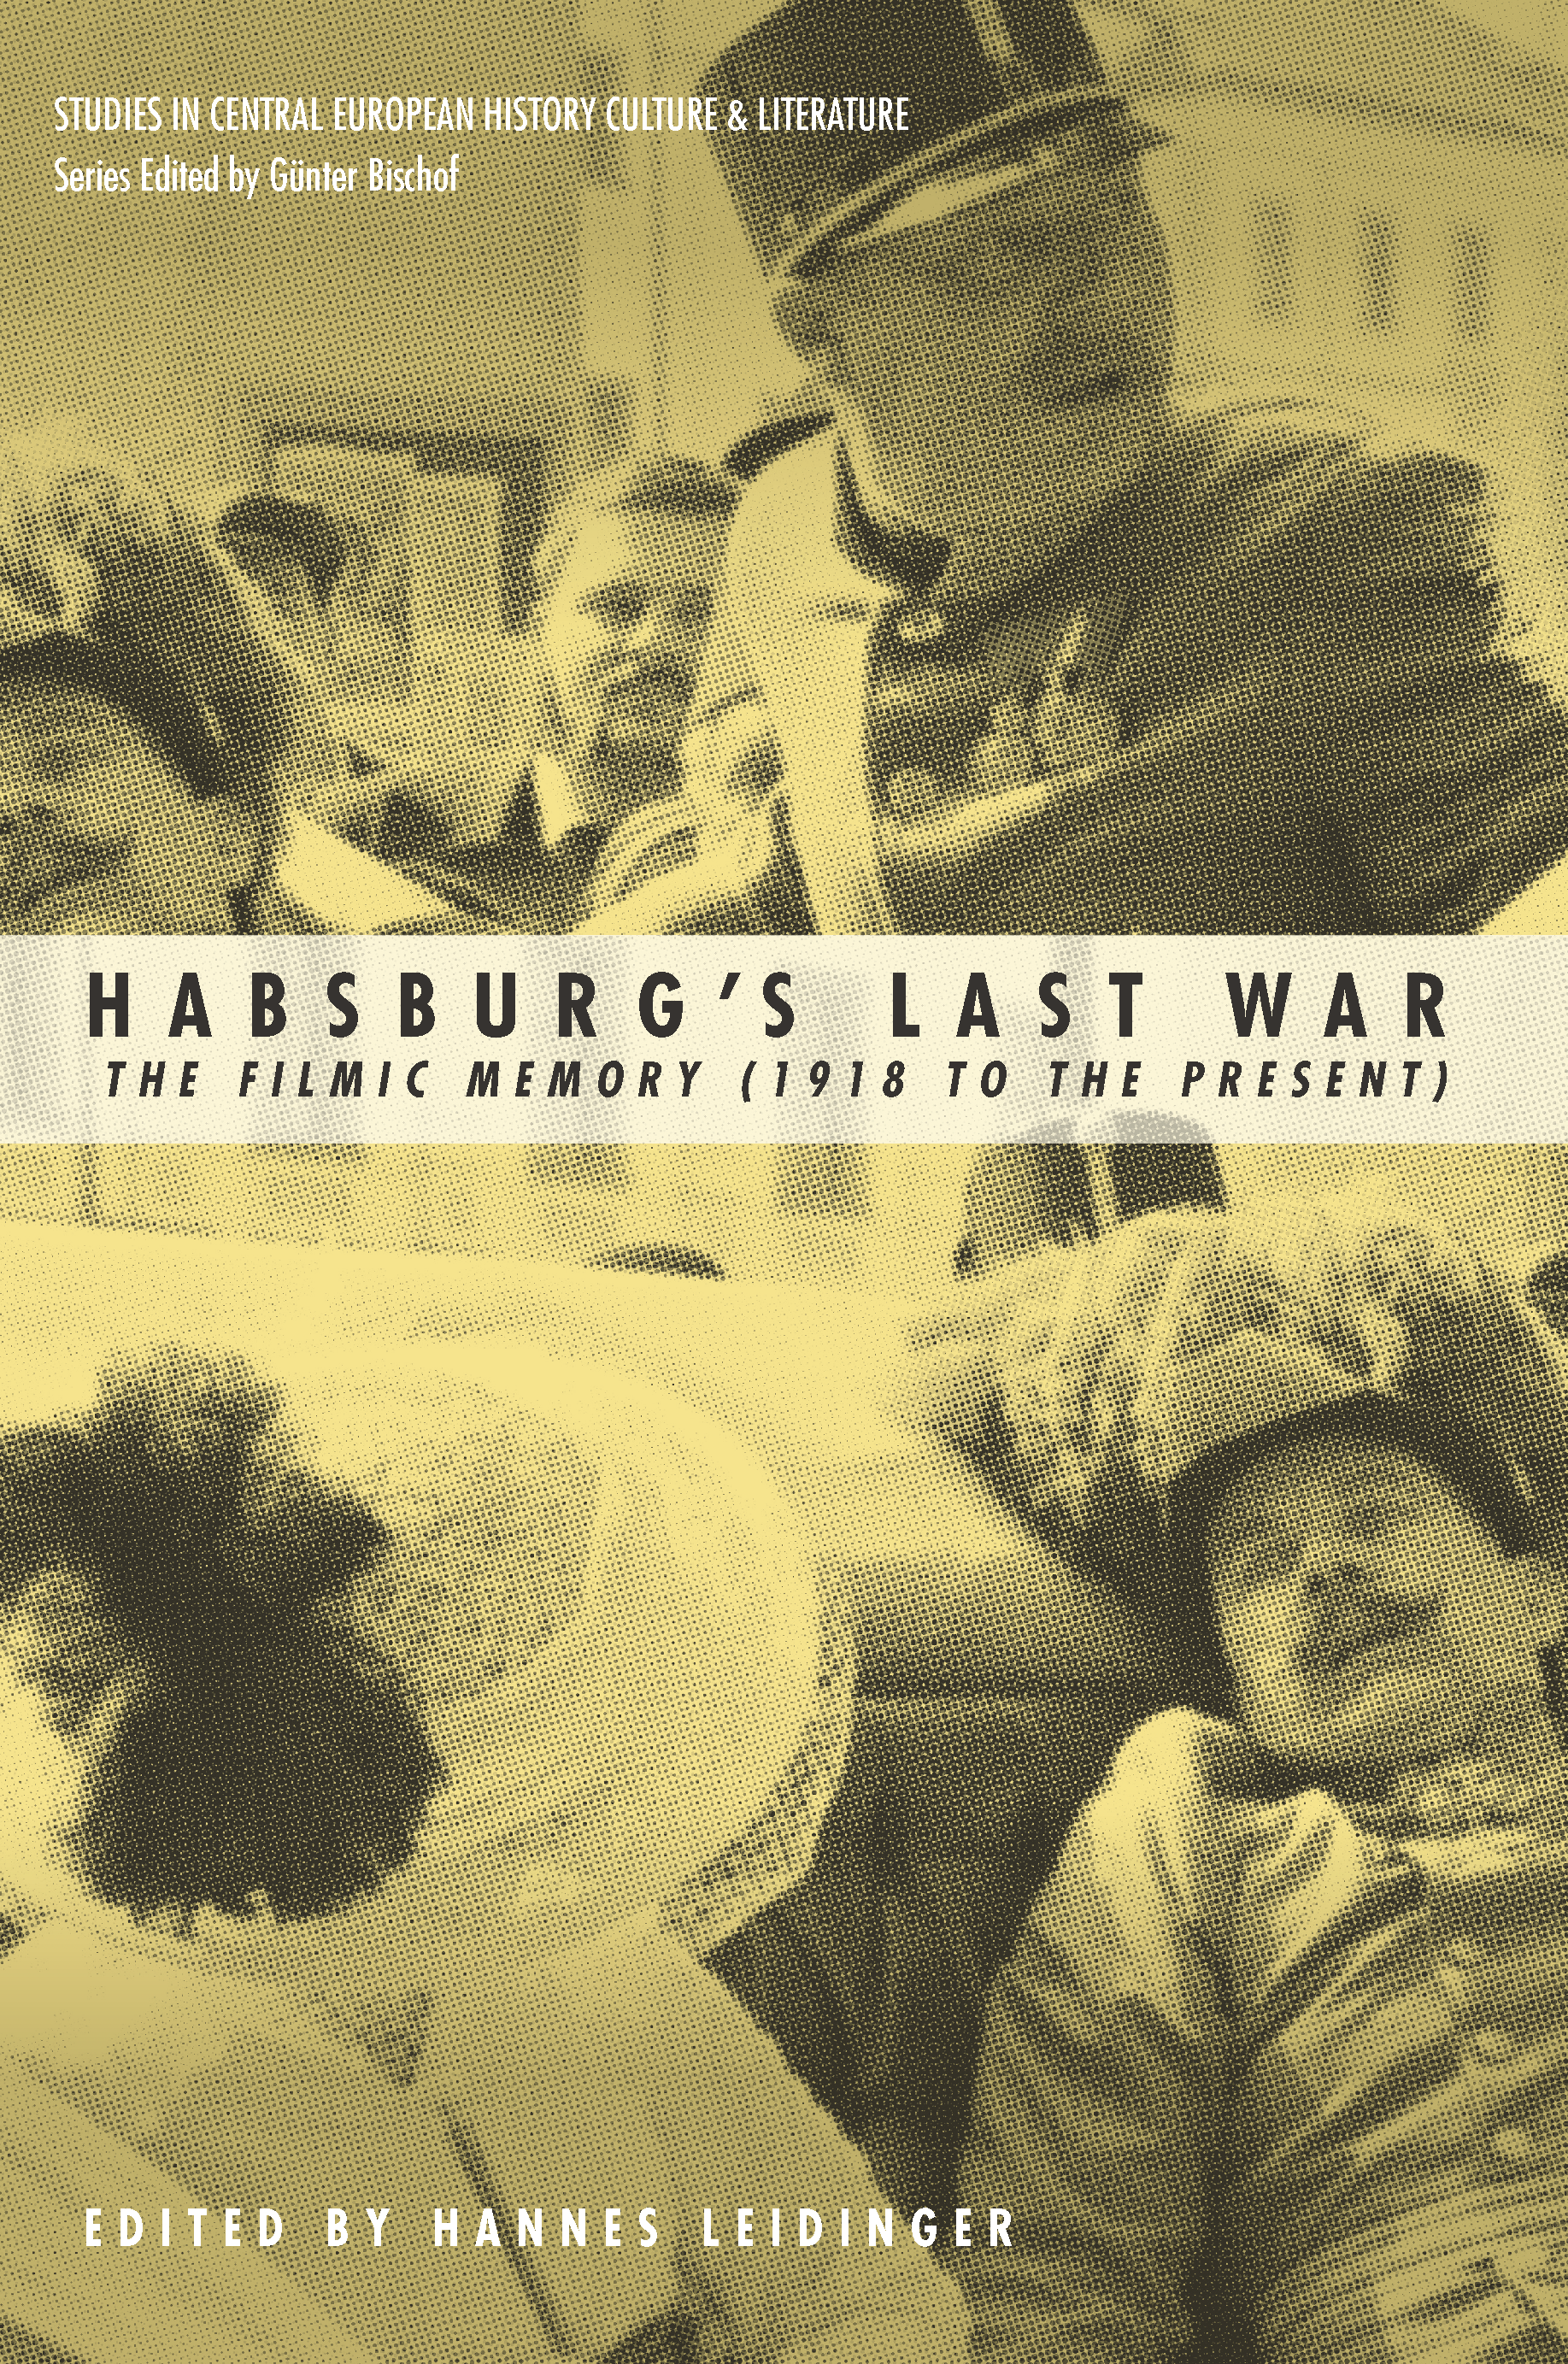 Habsburg's Last War: The Filmic Memory (1918 to the Present)